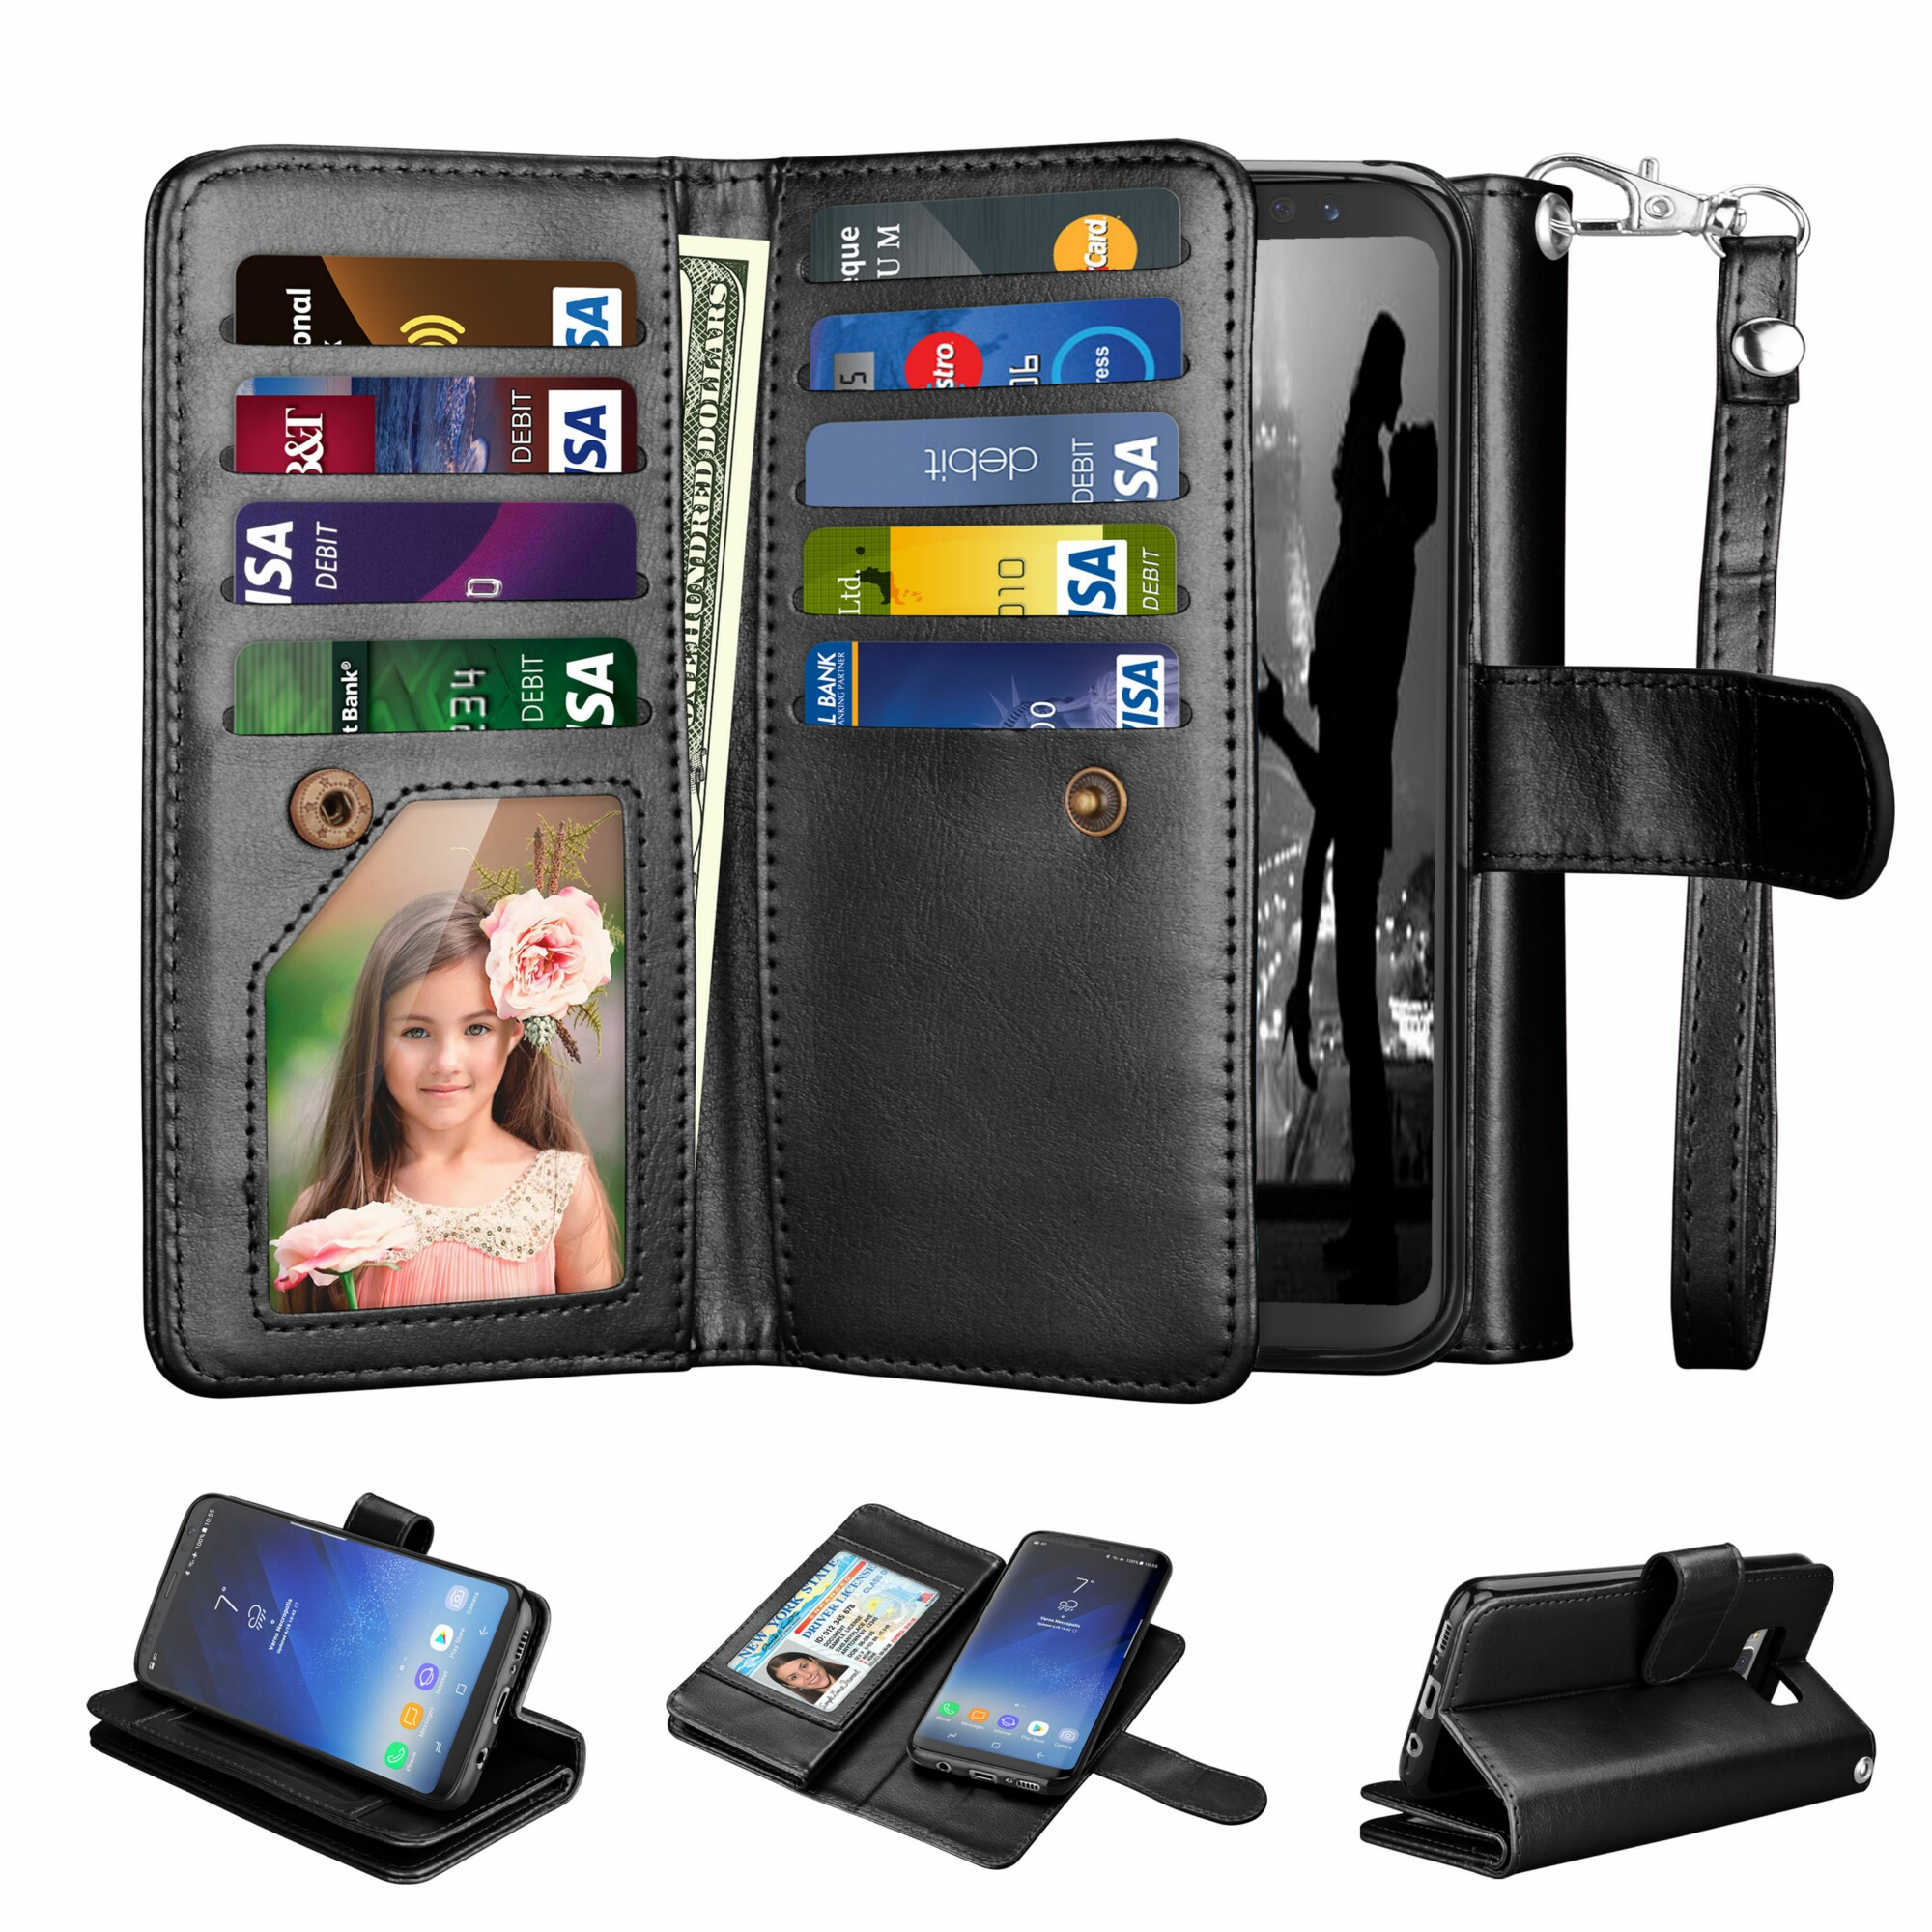 Samsung S8 Case, Galaxy S8 Wallet Case, Galaxy S8 Pu Leather Case, Njjex Pu Leather Magnet Stand Wallet Credit Card Holder Flip Case Cover Built-in 9 Card Slots Case For Samsung Galaxy S8 -Black